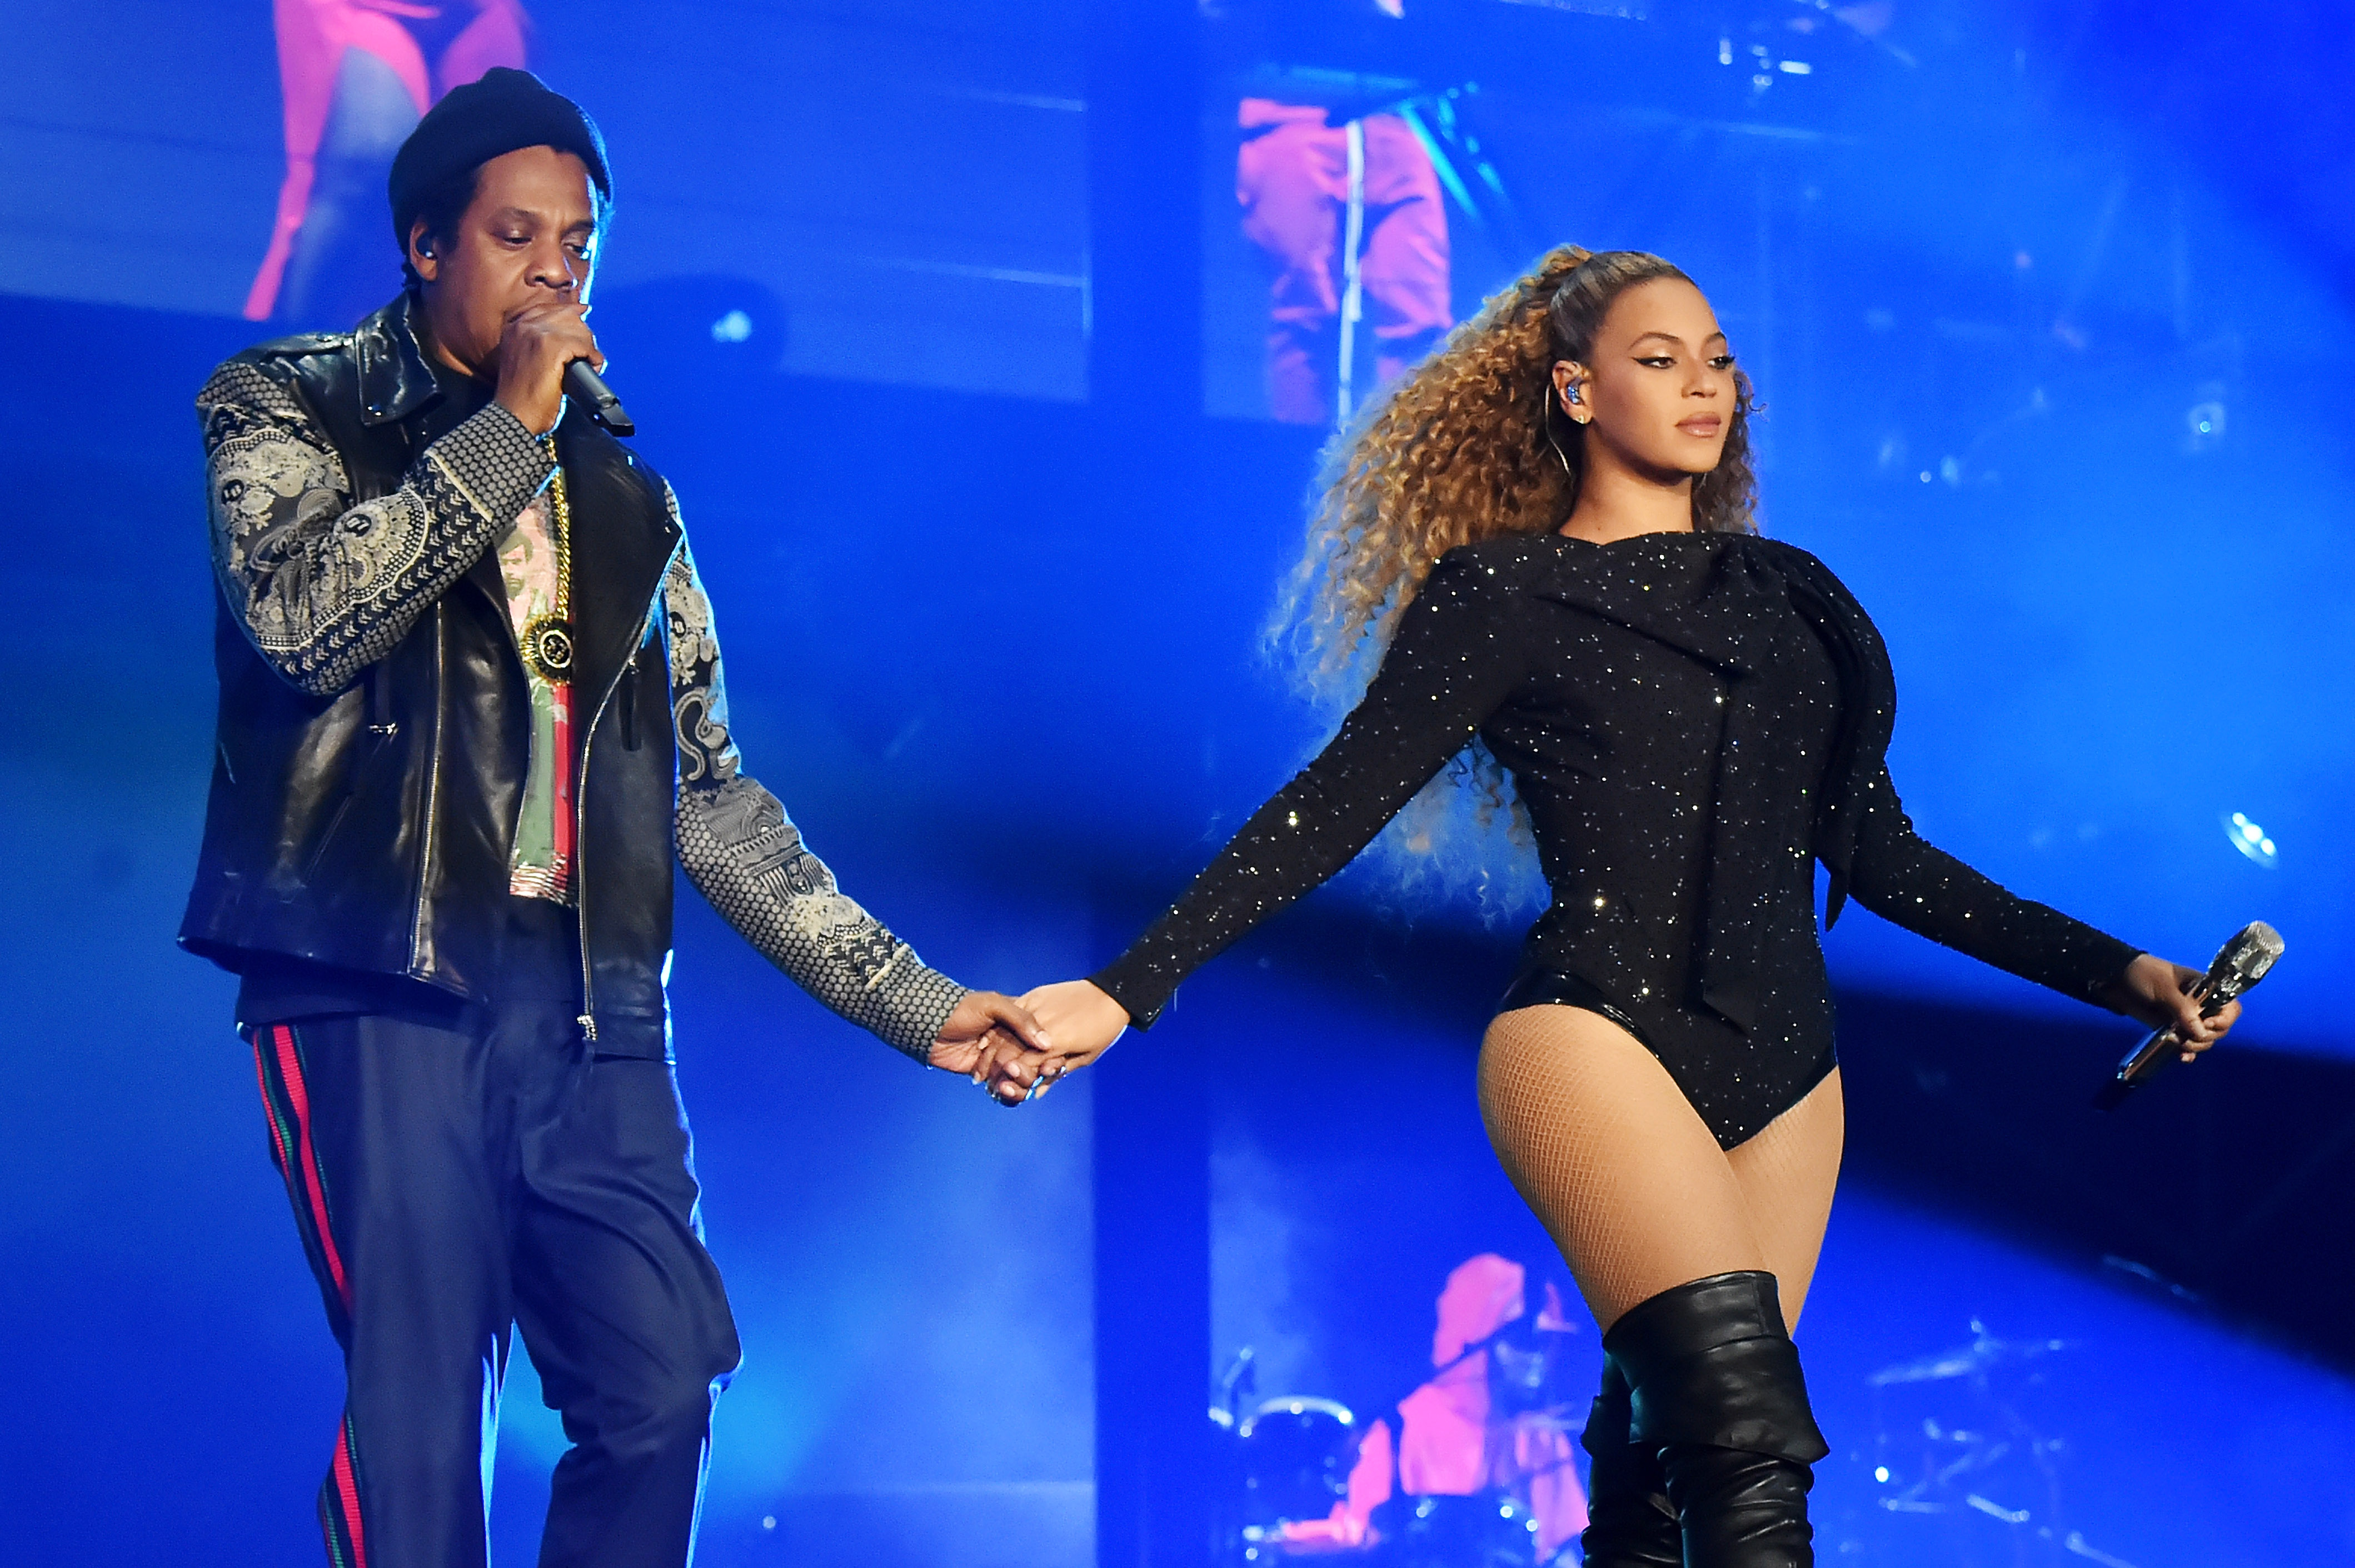 ay-Z and Beyonce Knowles perform on stage during the  On the Run II  tour opener at Principality Stadium on June 6, 2018 in Cardiff, Wales.